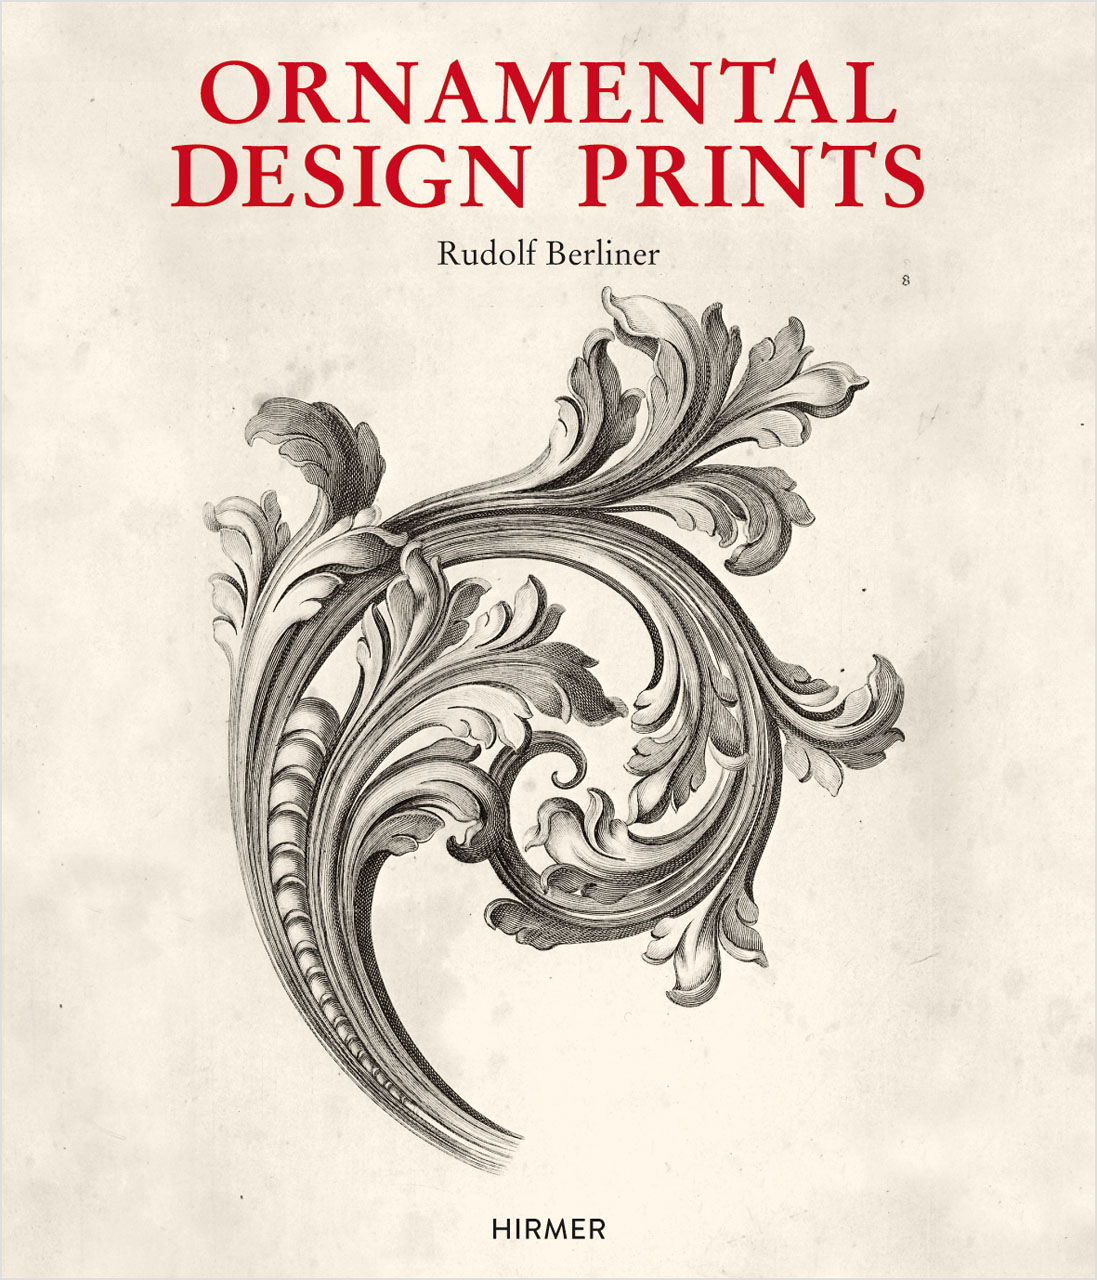 Ornamental Design Prints